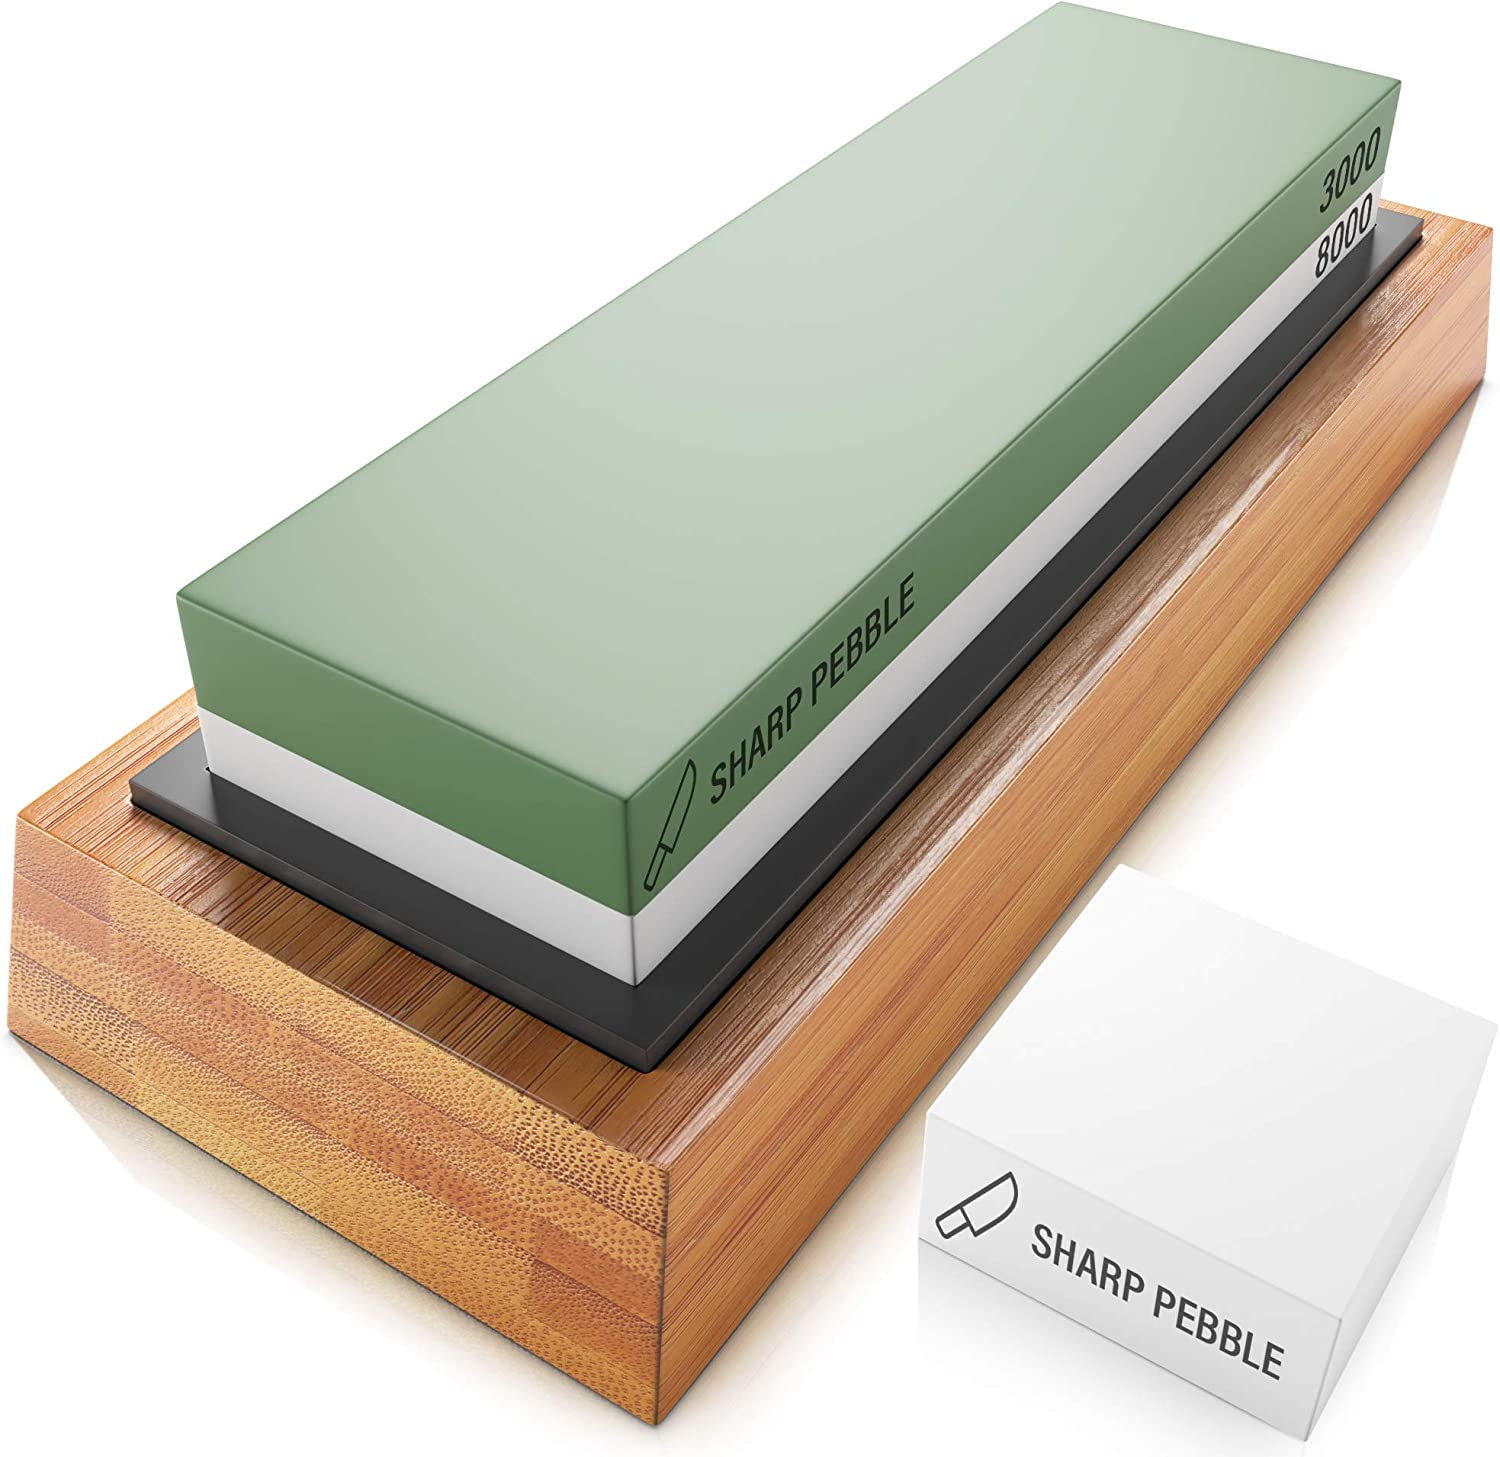 Sharp Pebble Premium Sharpening Stones 2 Side Grit 3000 8000